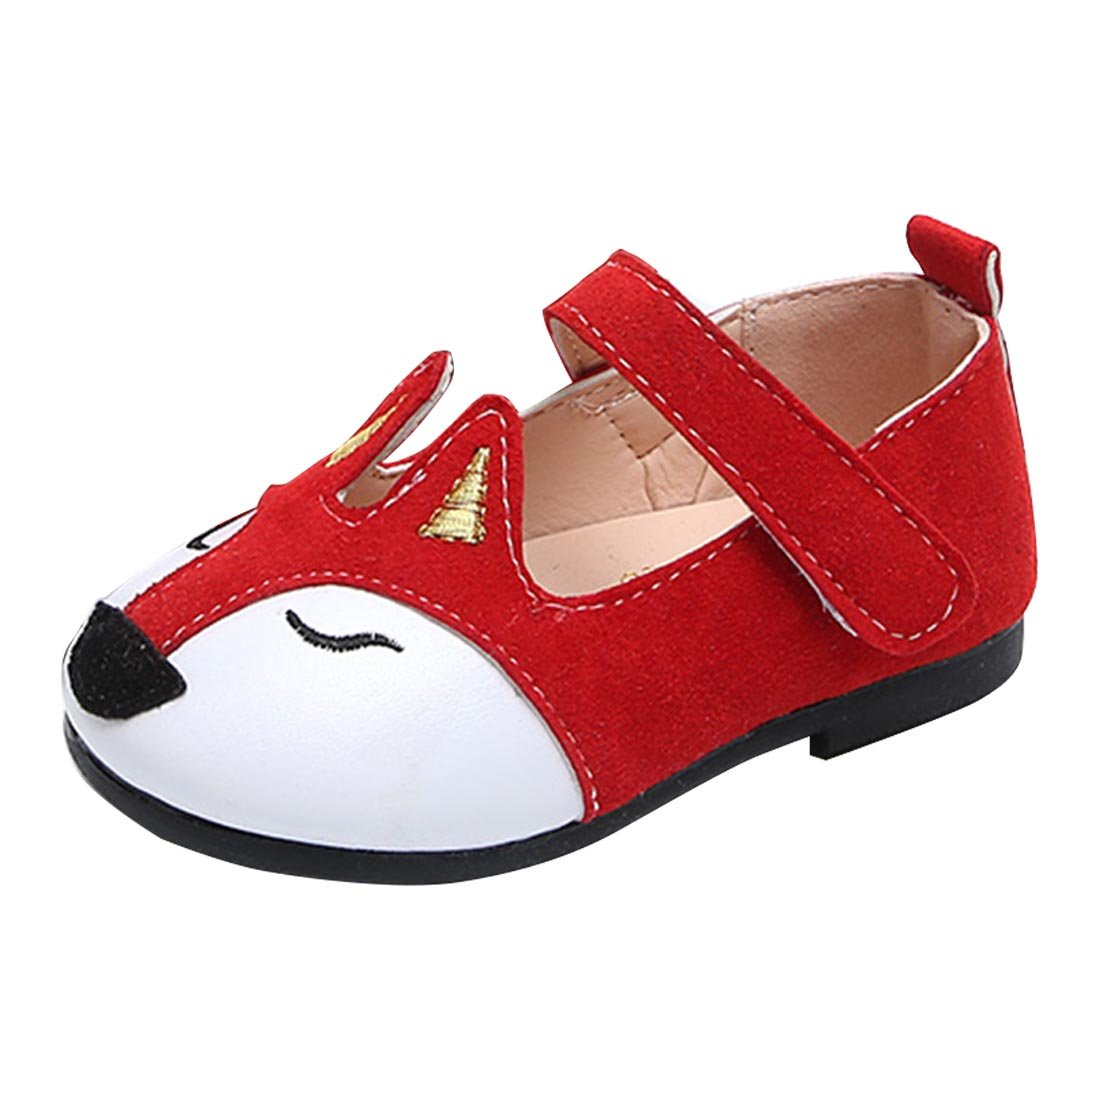 YYF Bebe Fille Ballerine Chaussure Plat Confortable a Poter Bien pour Robe 1-5 Ans